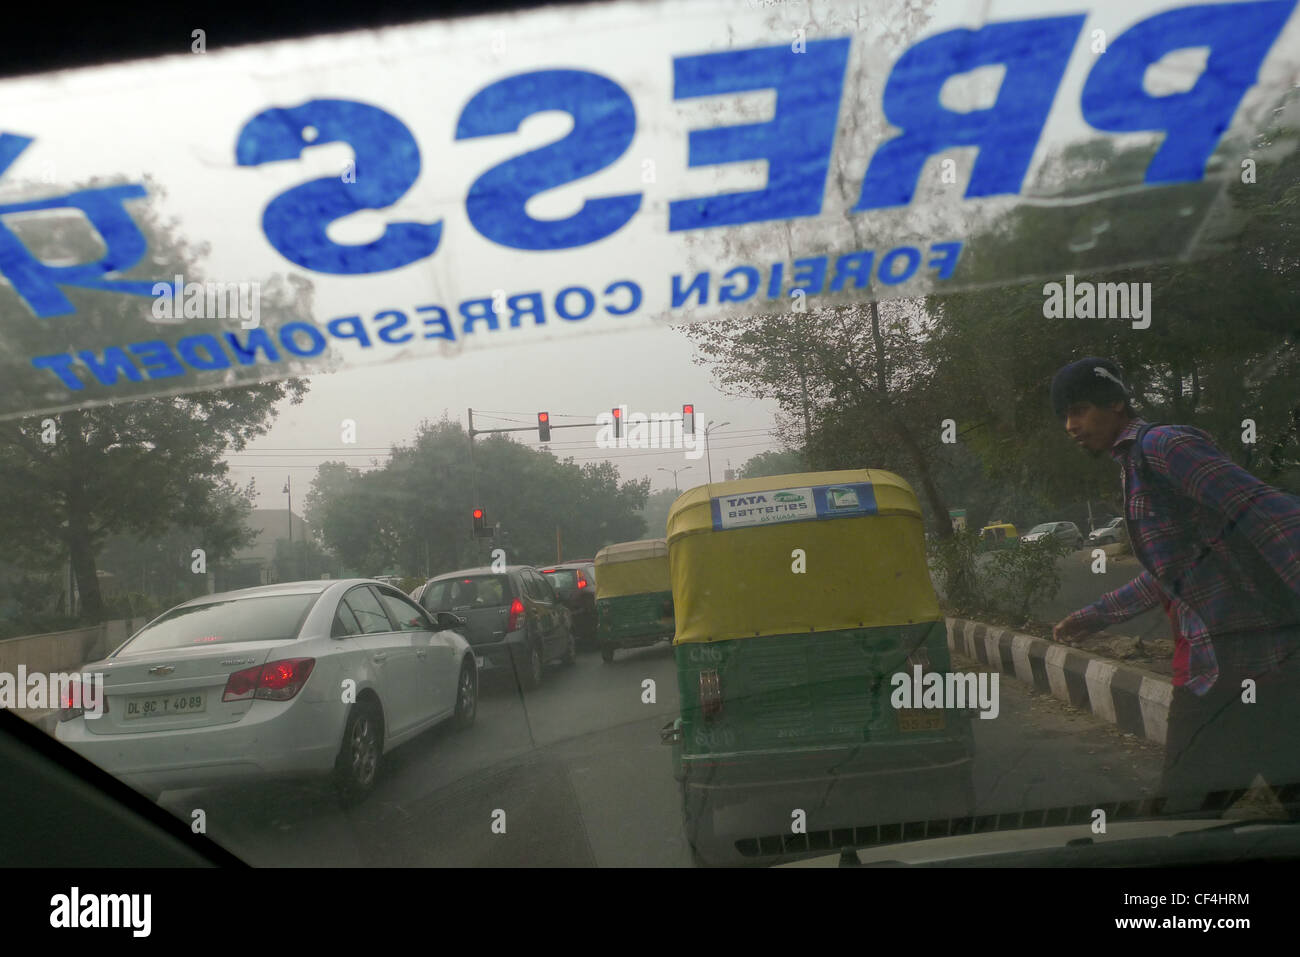 Foreign Correspondent Press identification on a car windscreen, in Delhi, India, on January 5th 2012. - Stock Image